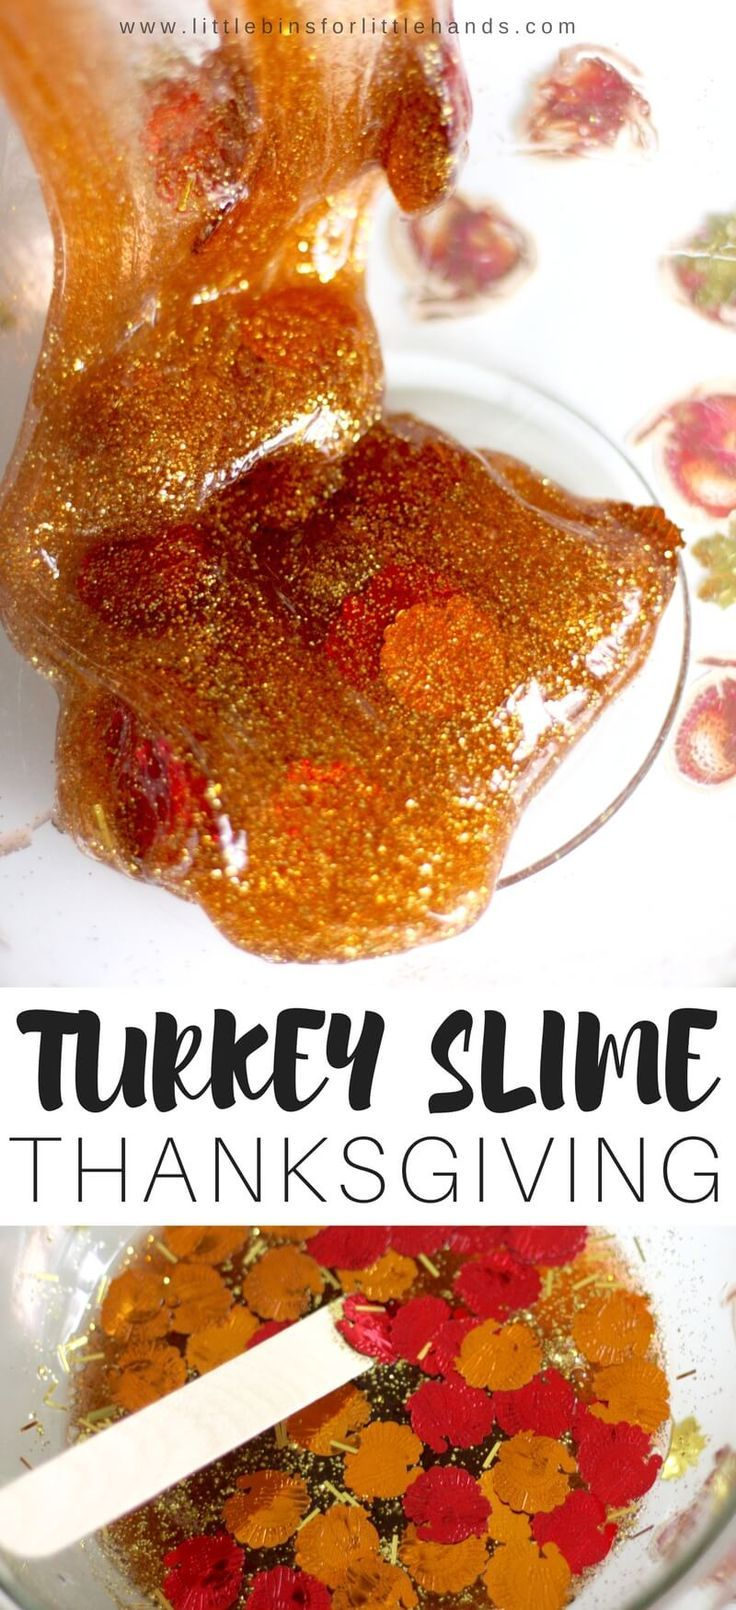 Totally turkey Thanksgiving slime recipe with turkey confetti! Use our basic homemade slime recipes to make a turkey themed Thanksgiving slime that isn't gravy. Have fun with this Thanksgiving science activity and sensory play idea this fall! You can use our homemade saline solution slime recipe, liquid starch slime recipe, or borax slime recipe for making fun and festive holiday slime ideas any day of the year!